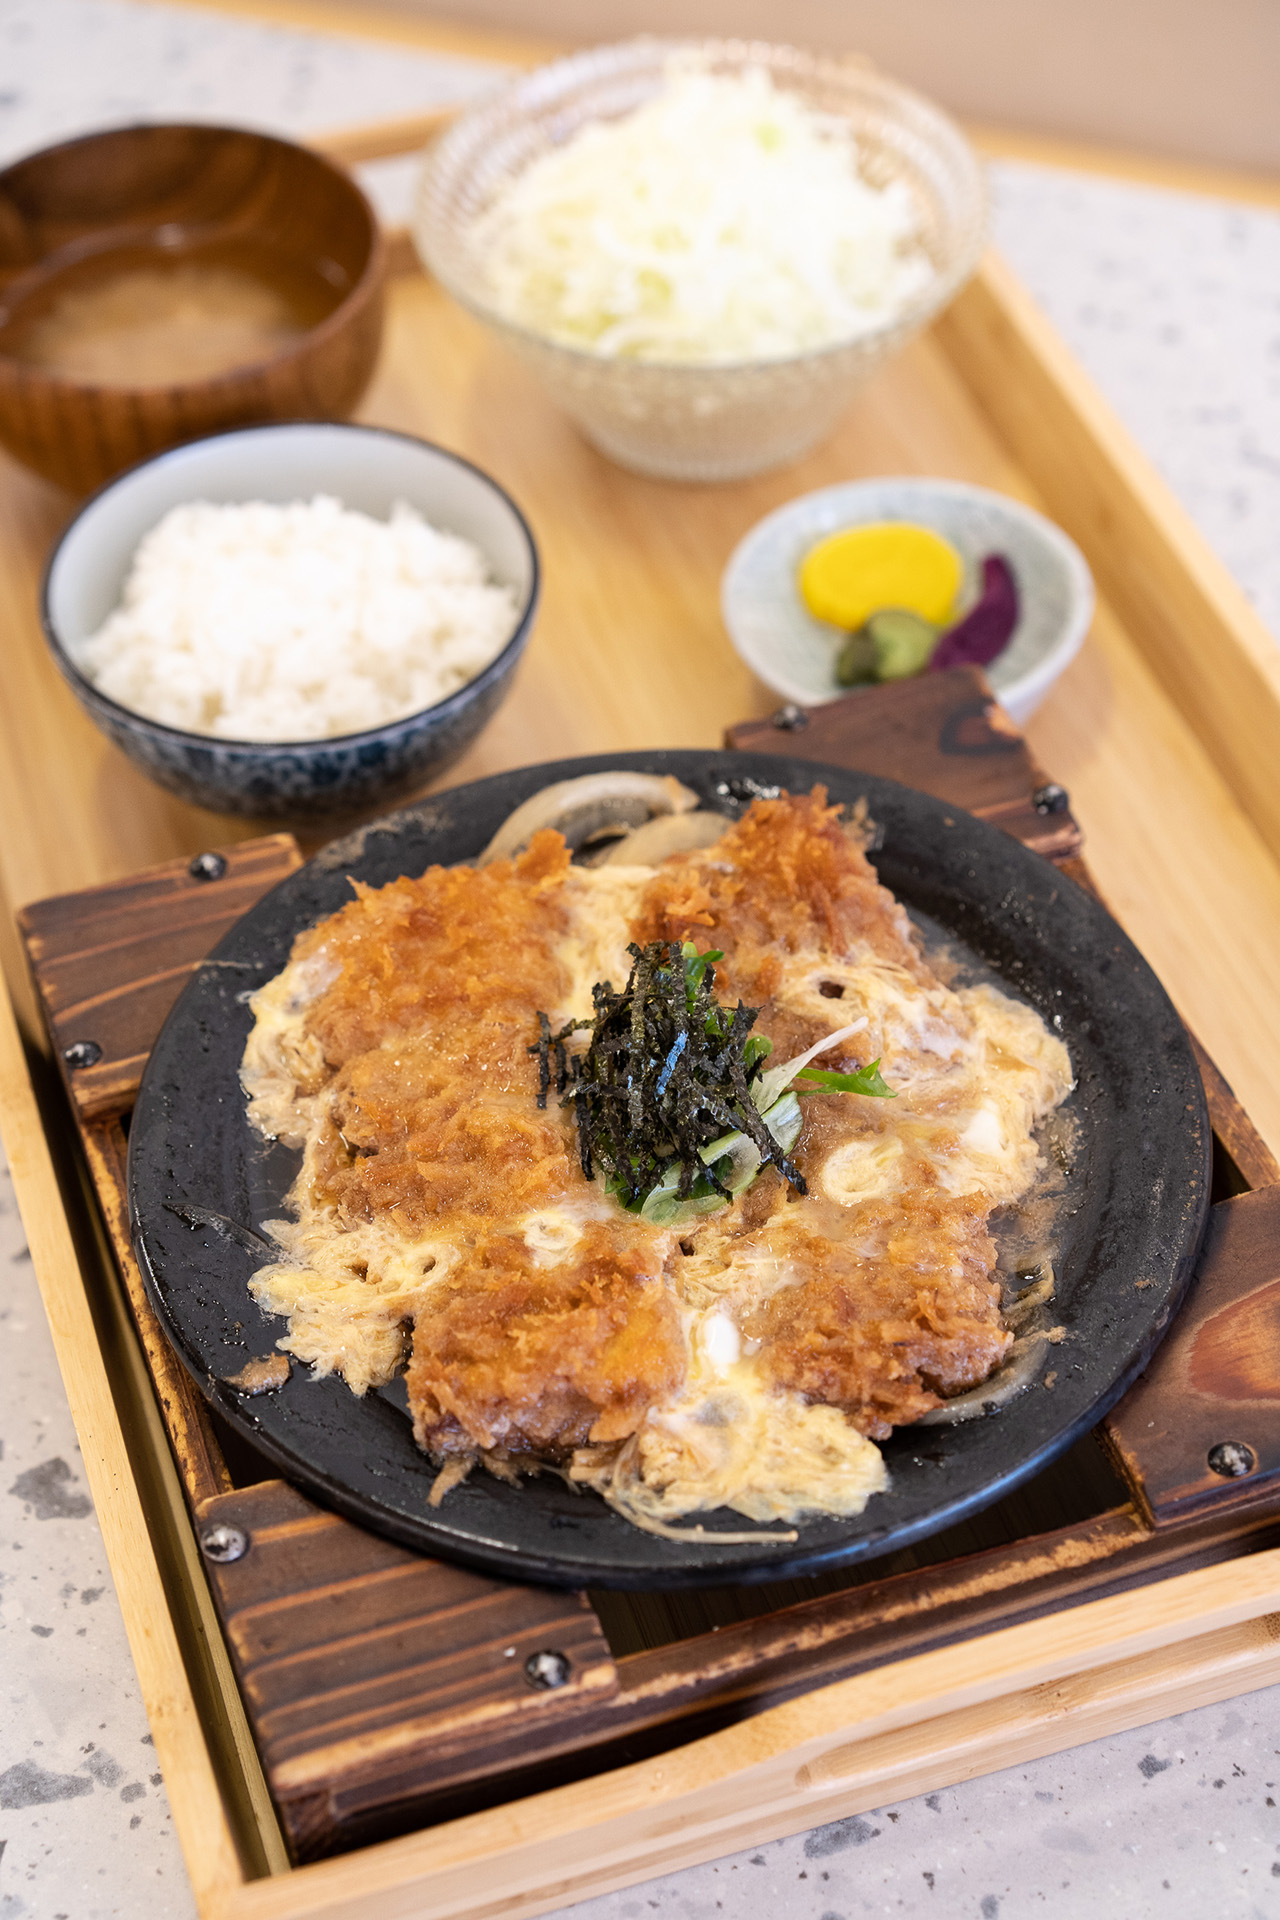 Katsu Nabe. Deep fried breaded pork loin mixed with egg, onion, and mushroom in housemade sauce.